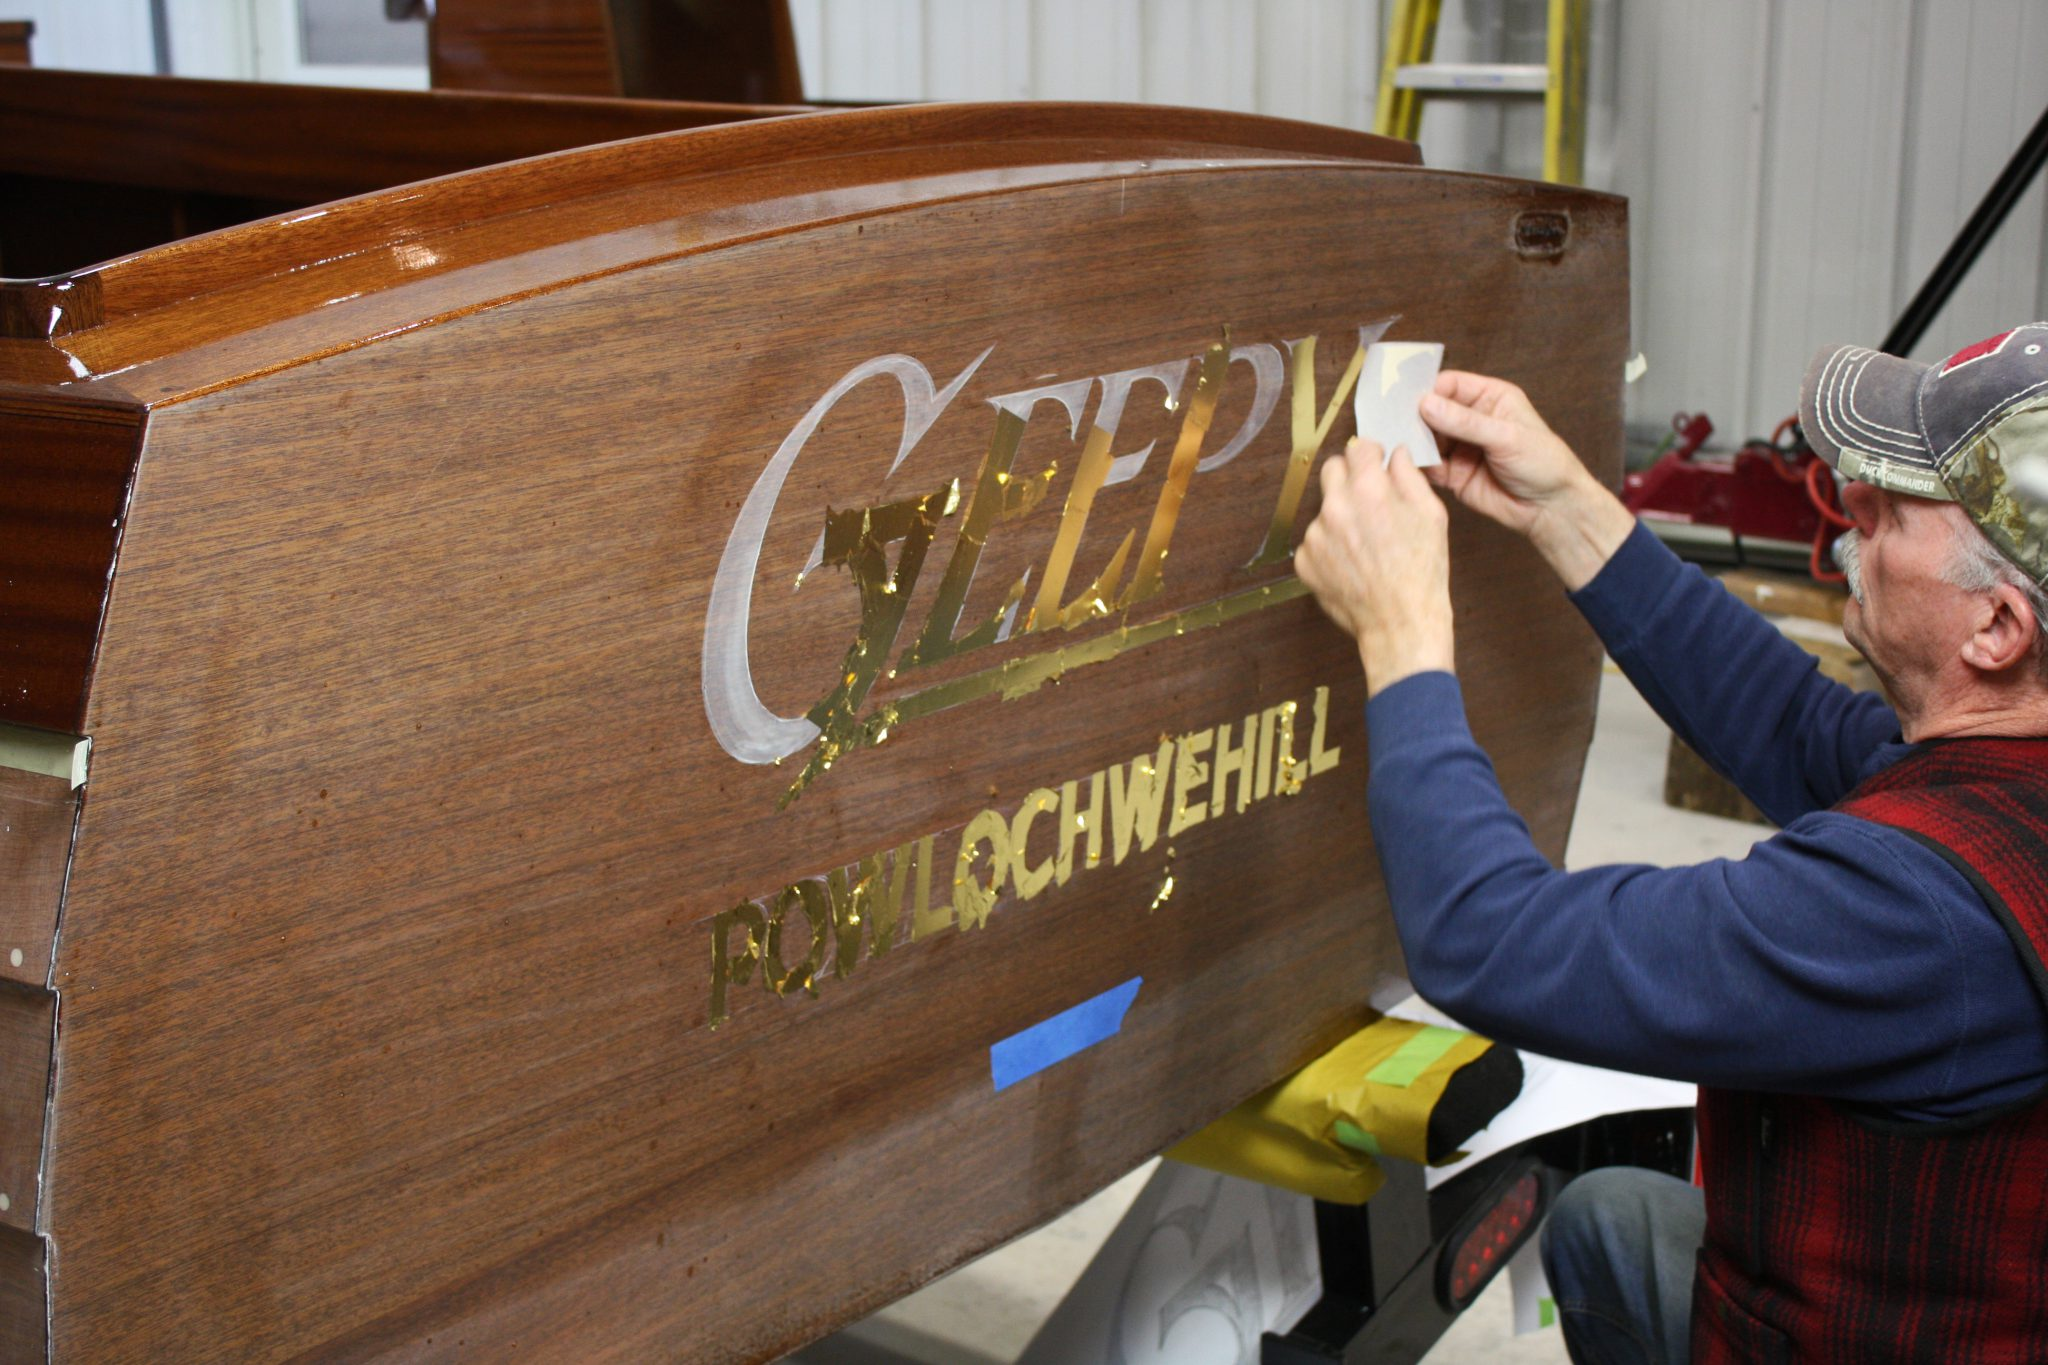 23 karat gold leaf being applied to transom of Geepy